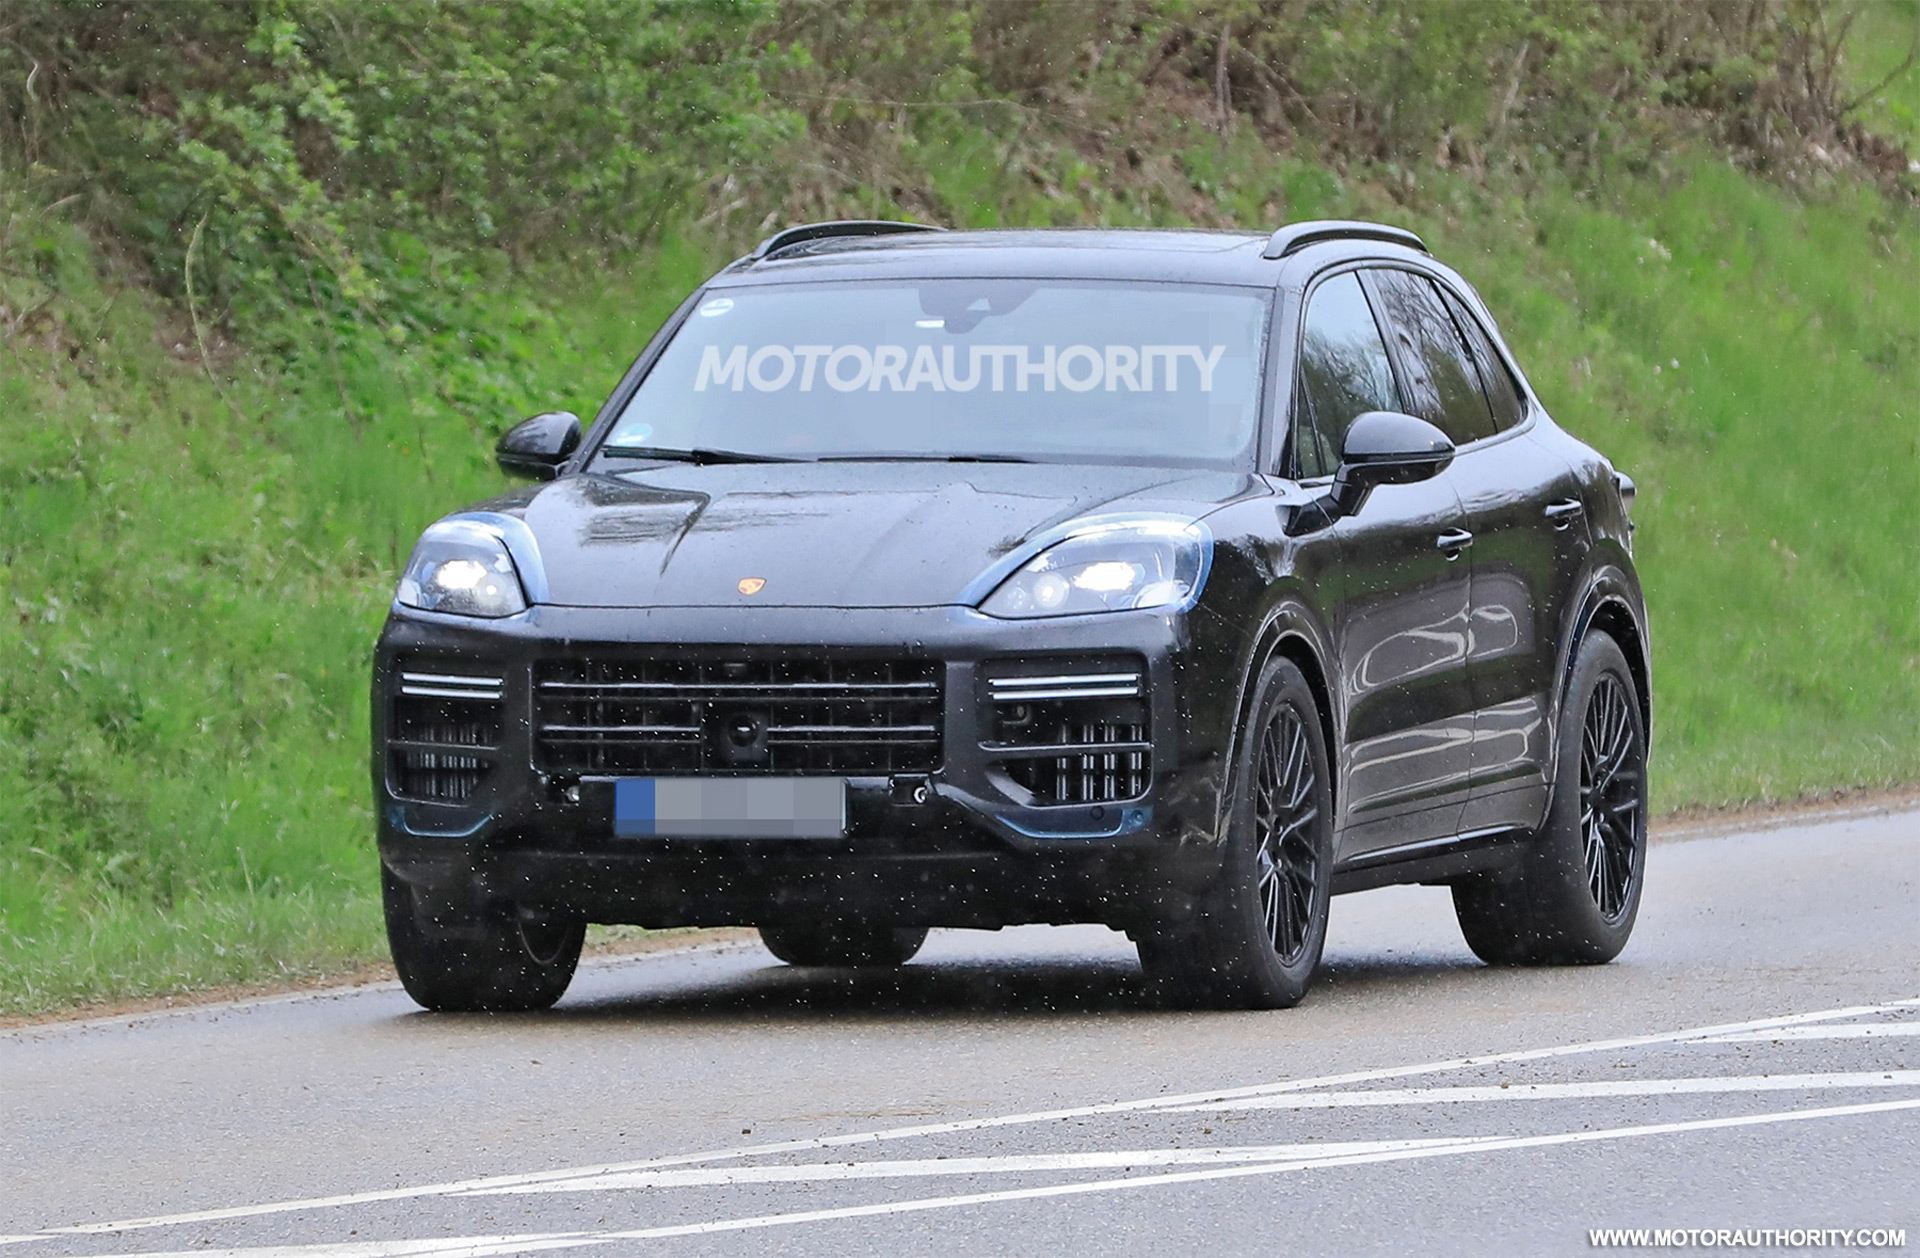 2023 Porsche Cayenne spy shots and video: Major update pegged for performance crossover